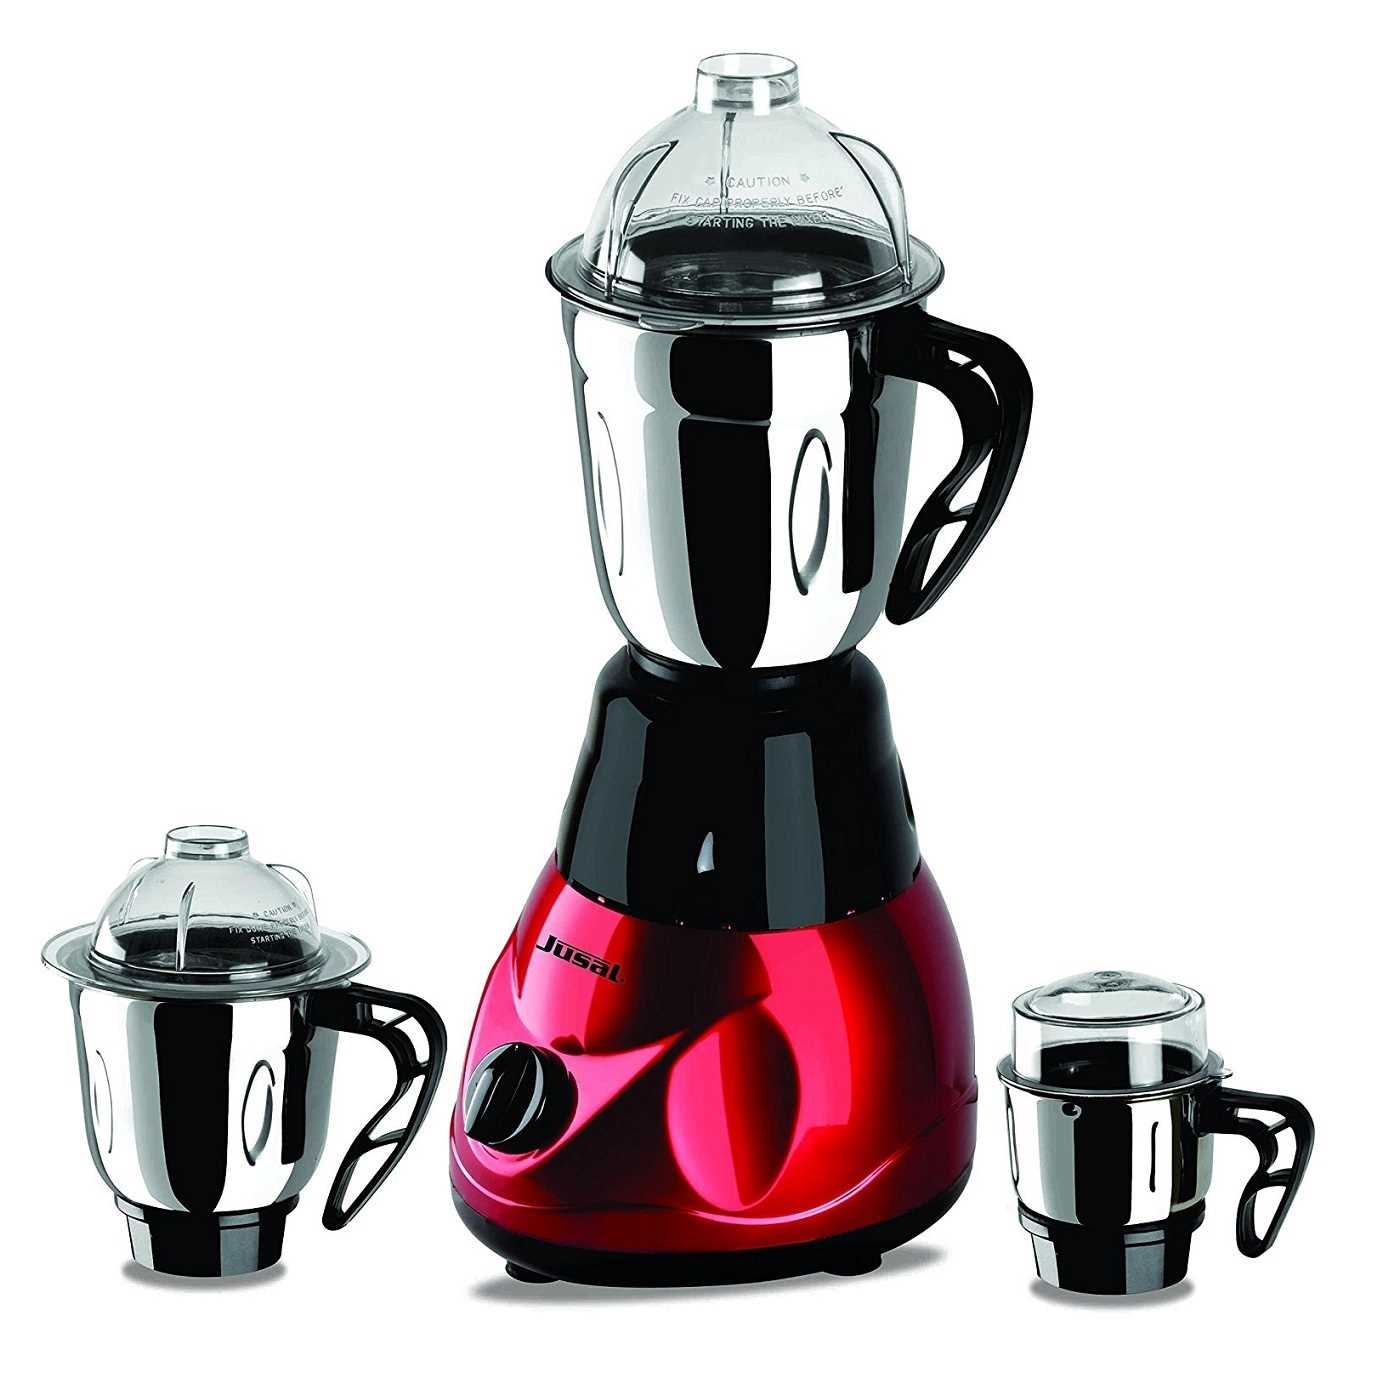 Jusal Majestic 800 W Mixer Grinder